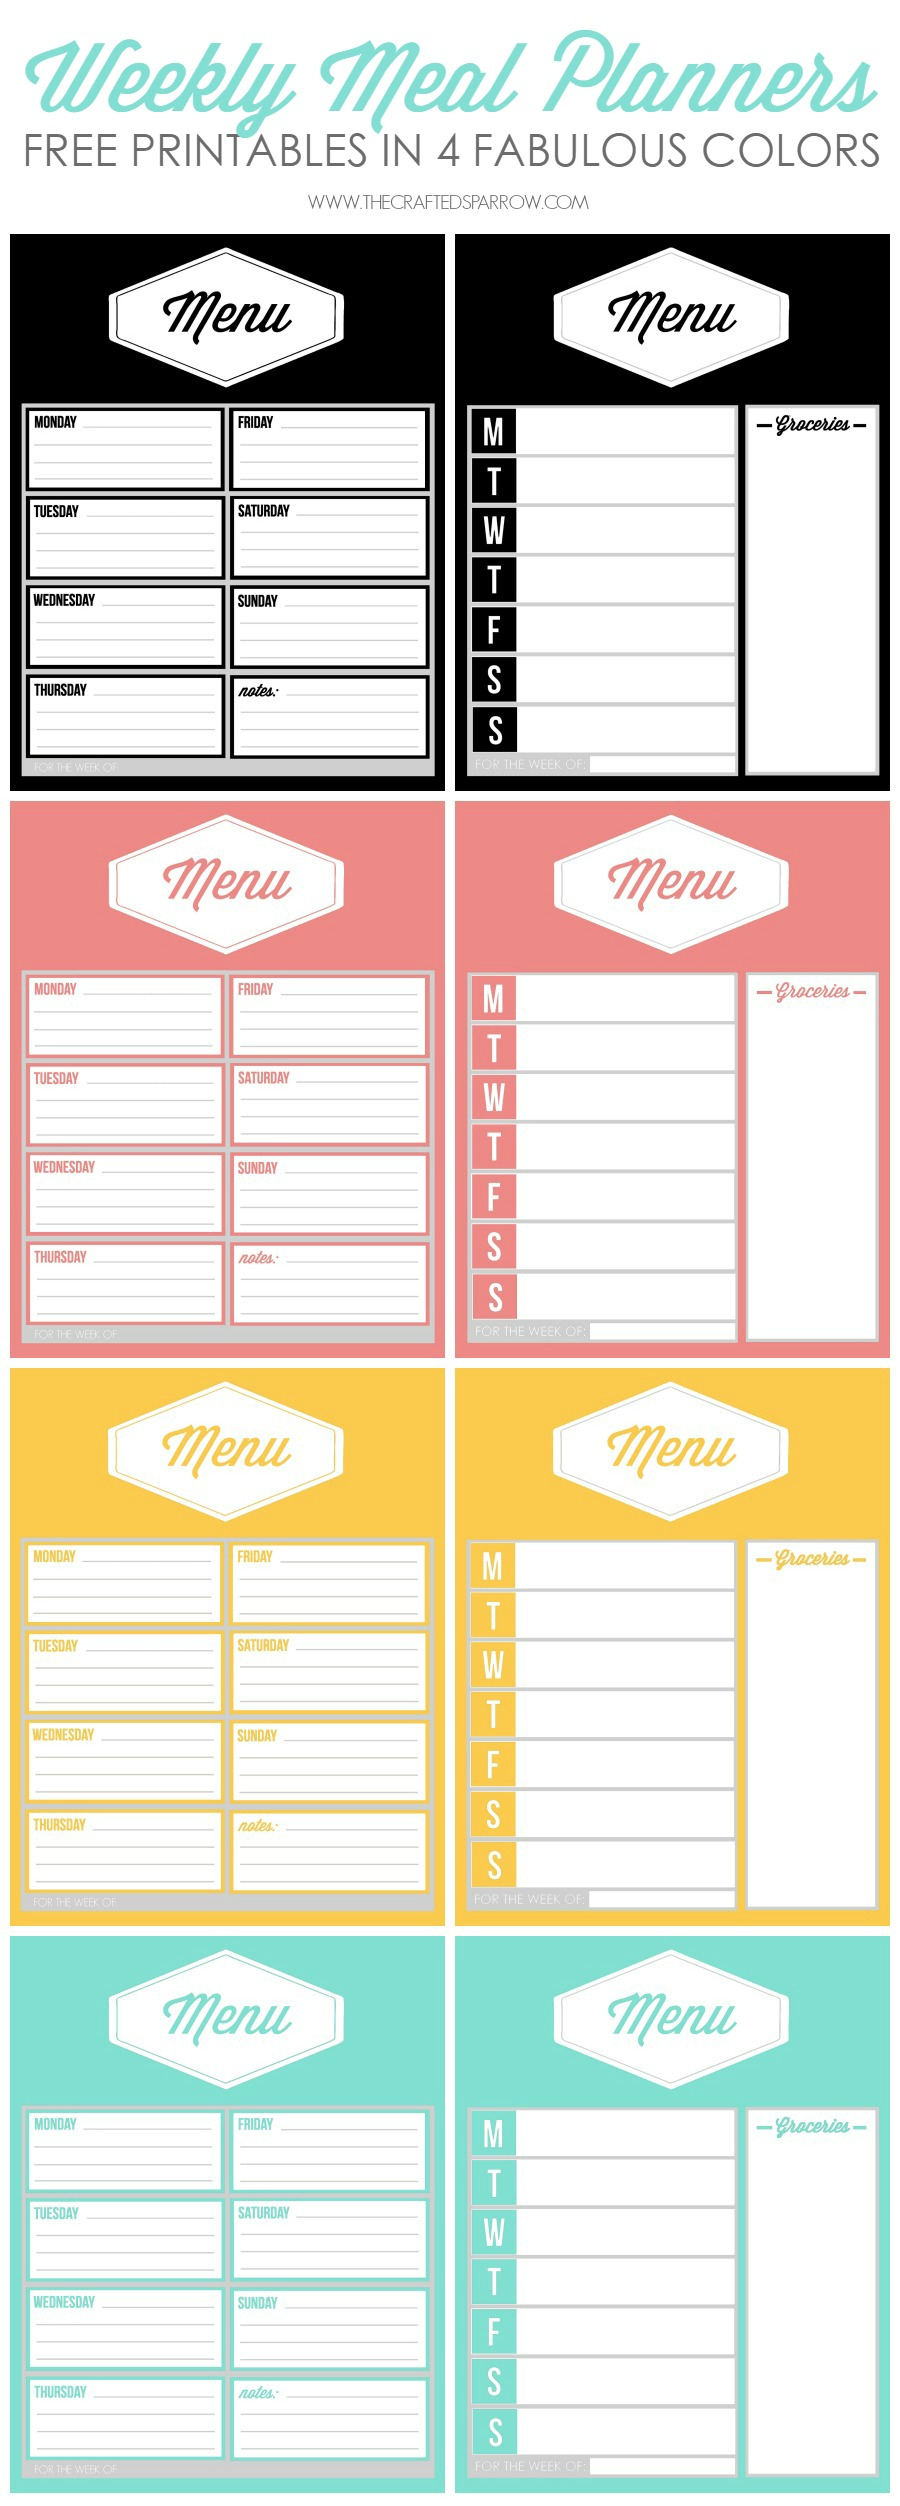 Free Printable Weekly Meal Planners - Weekly Menu Free Printable